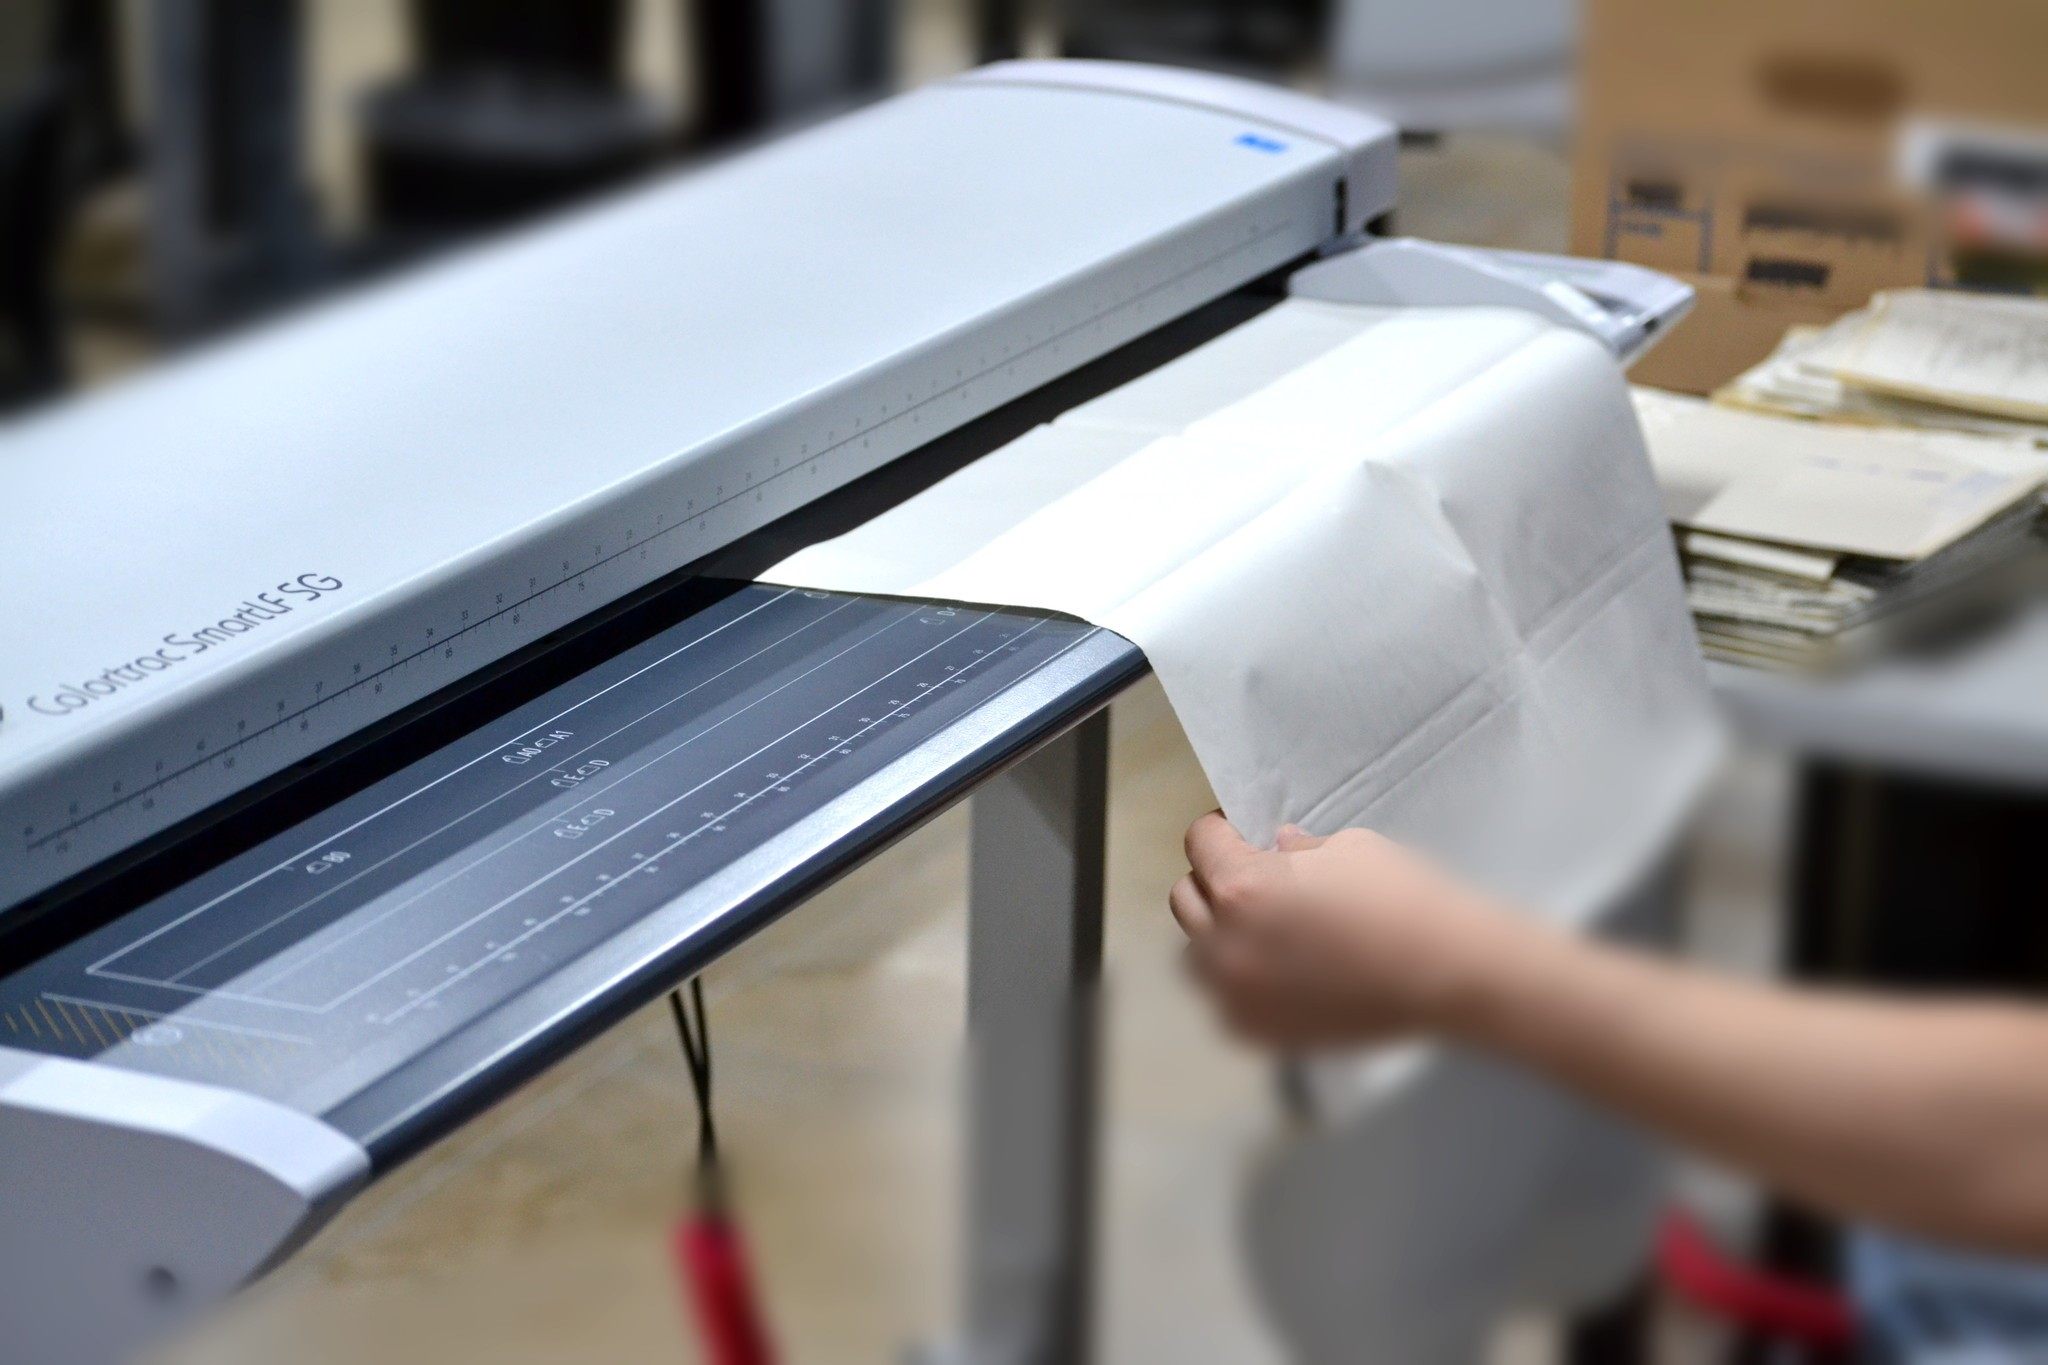 Document Scanning Services Buyer's Guide